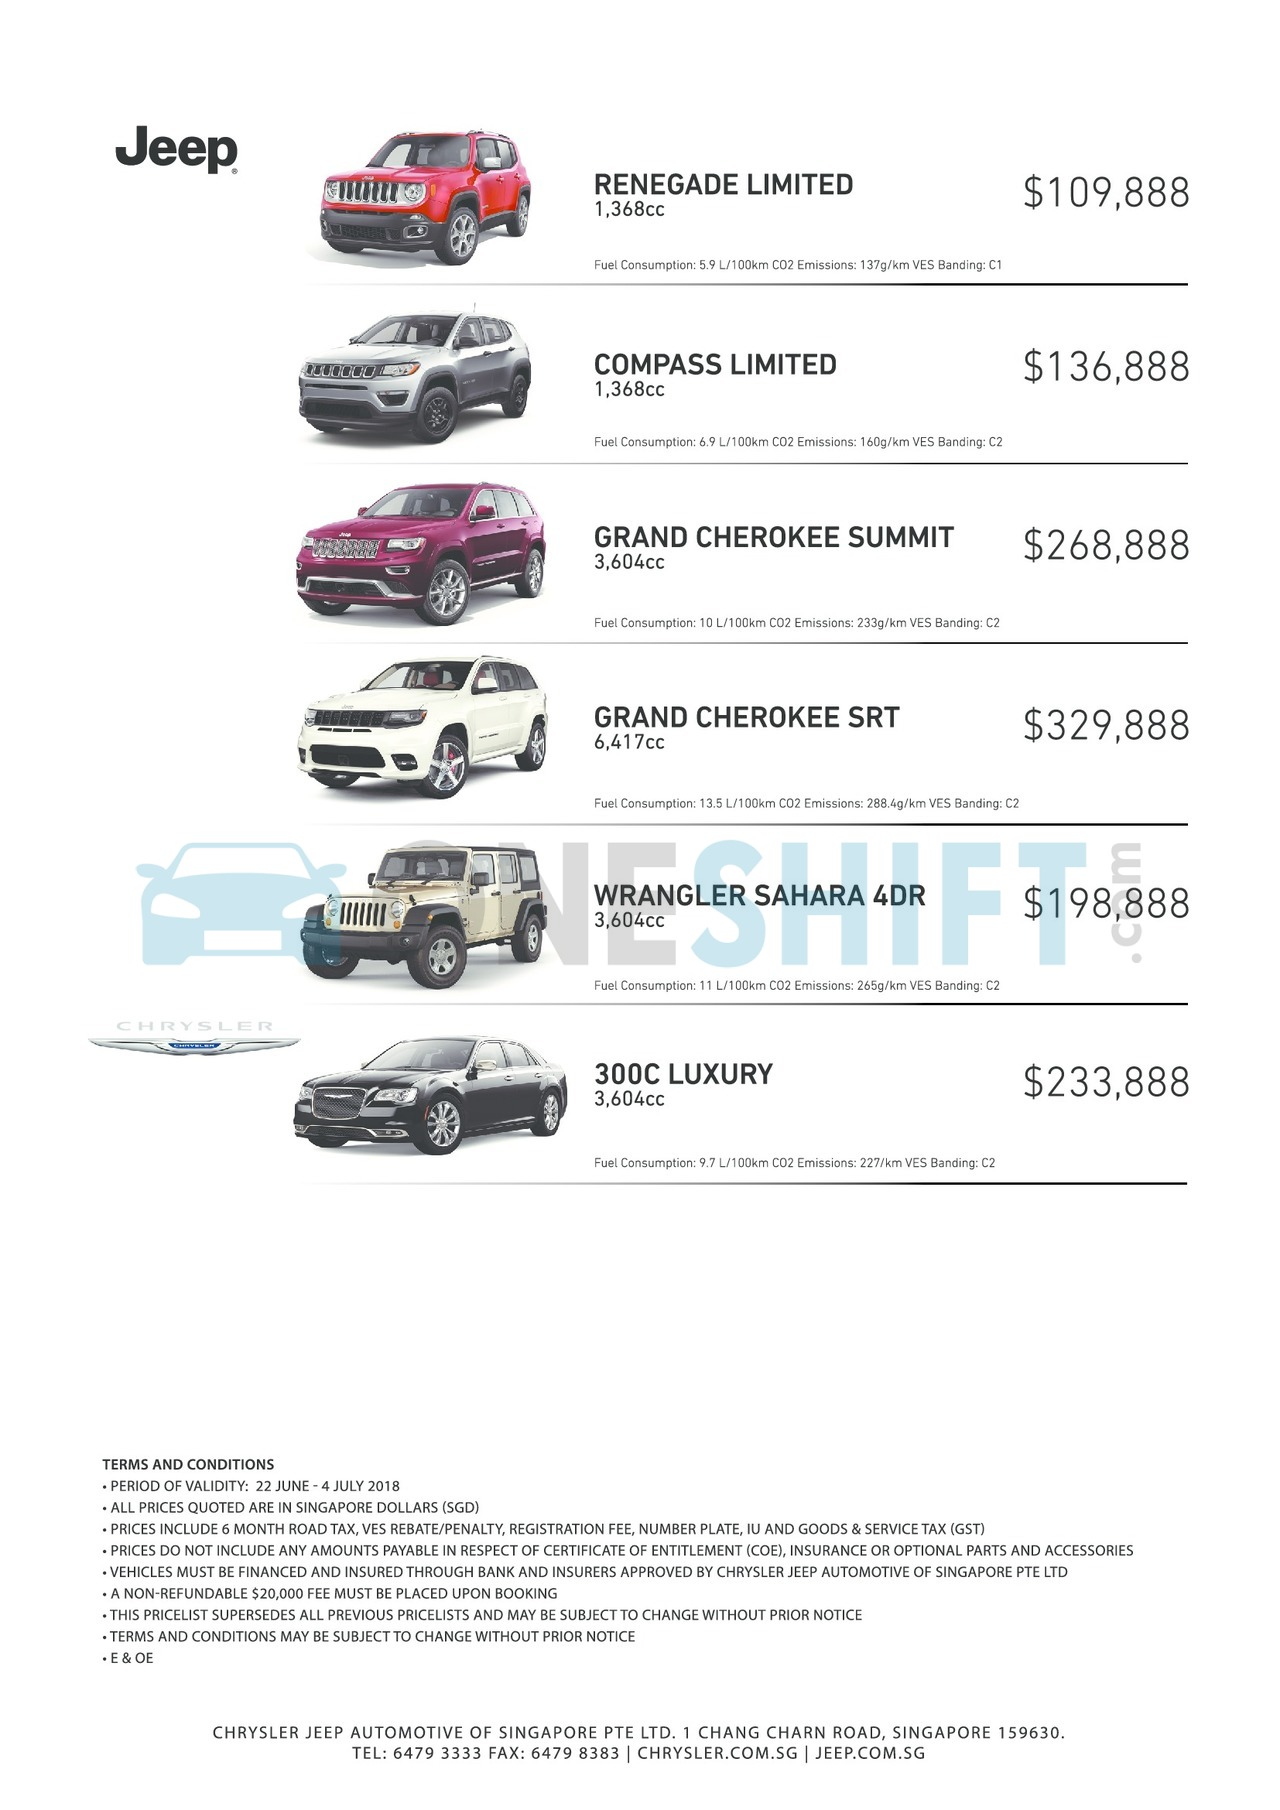 Jeep Singapore Printed Car Price List Oneshift Com